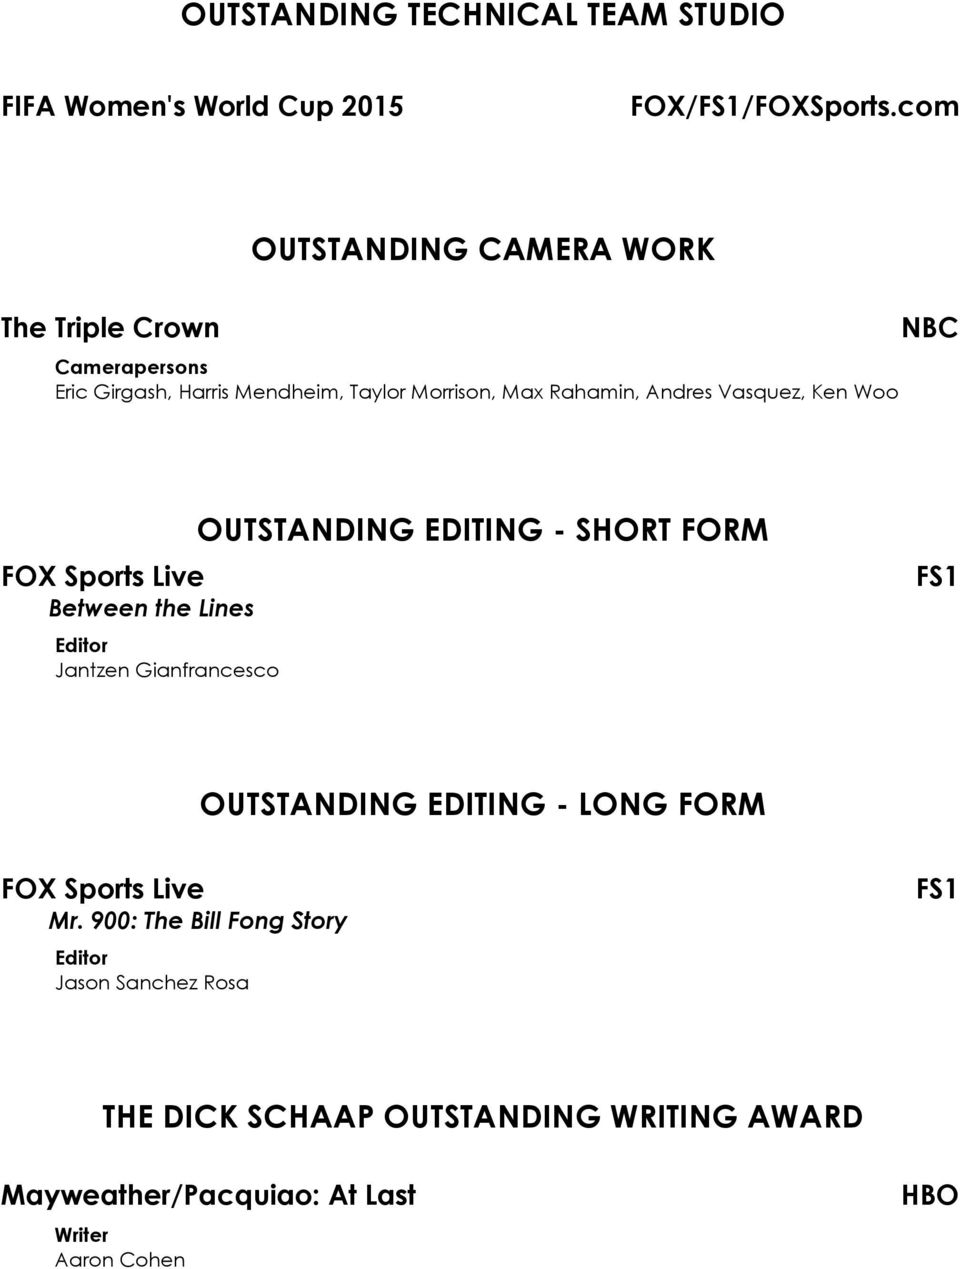 The National Academy Of Television Arts Sciences Announces Winners